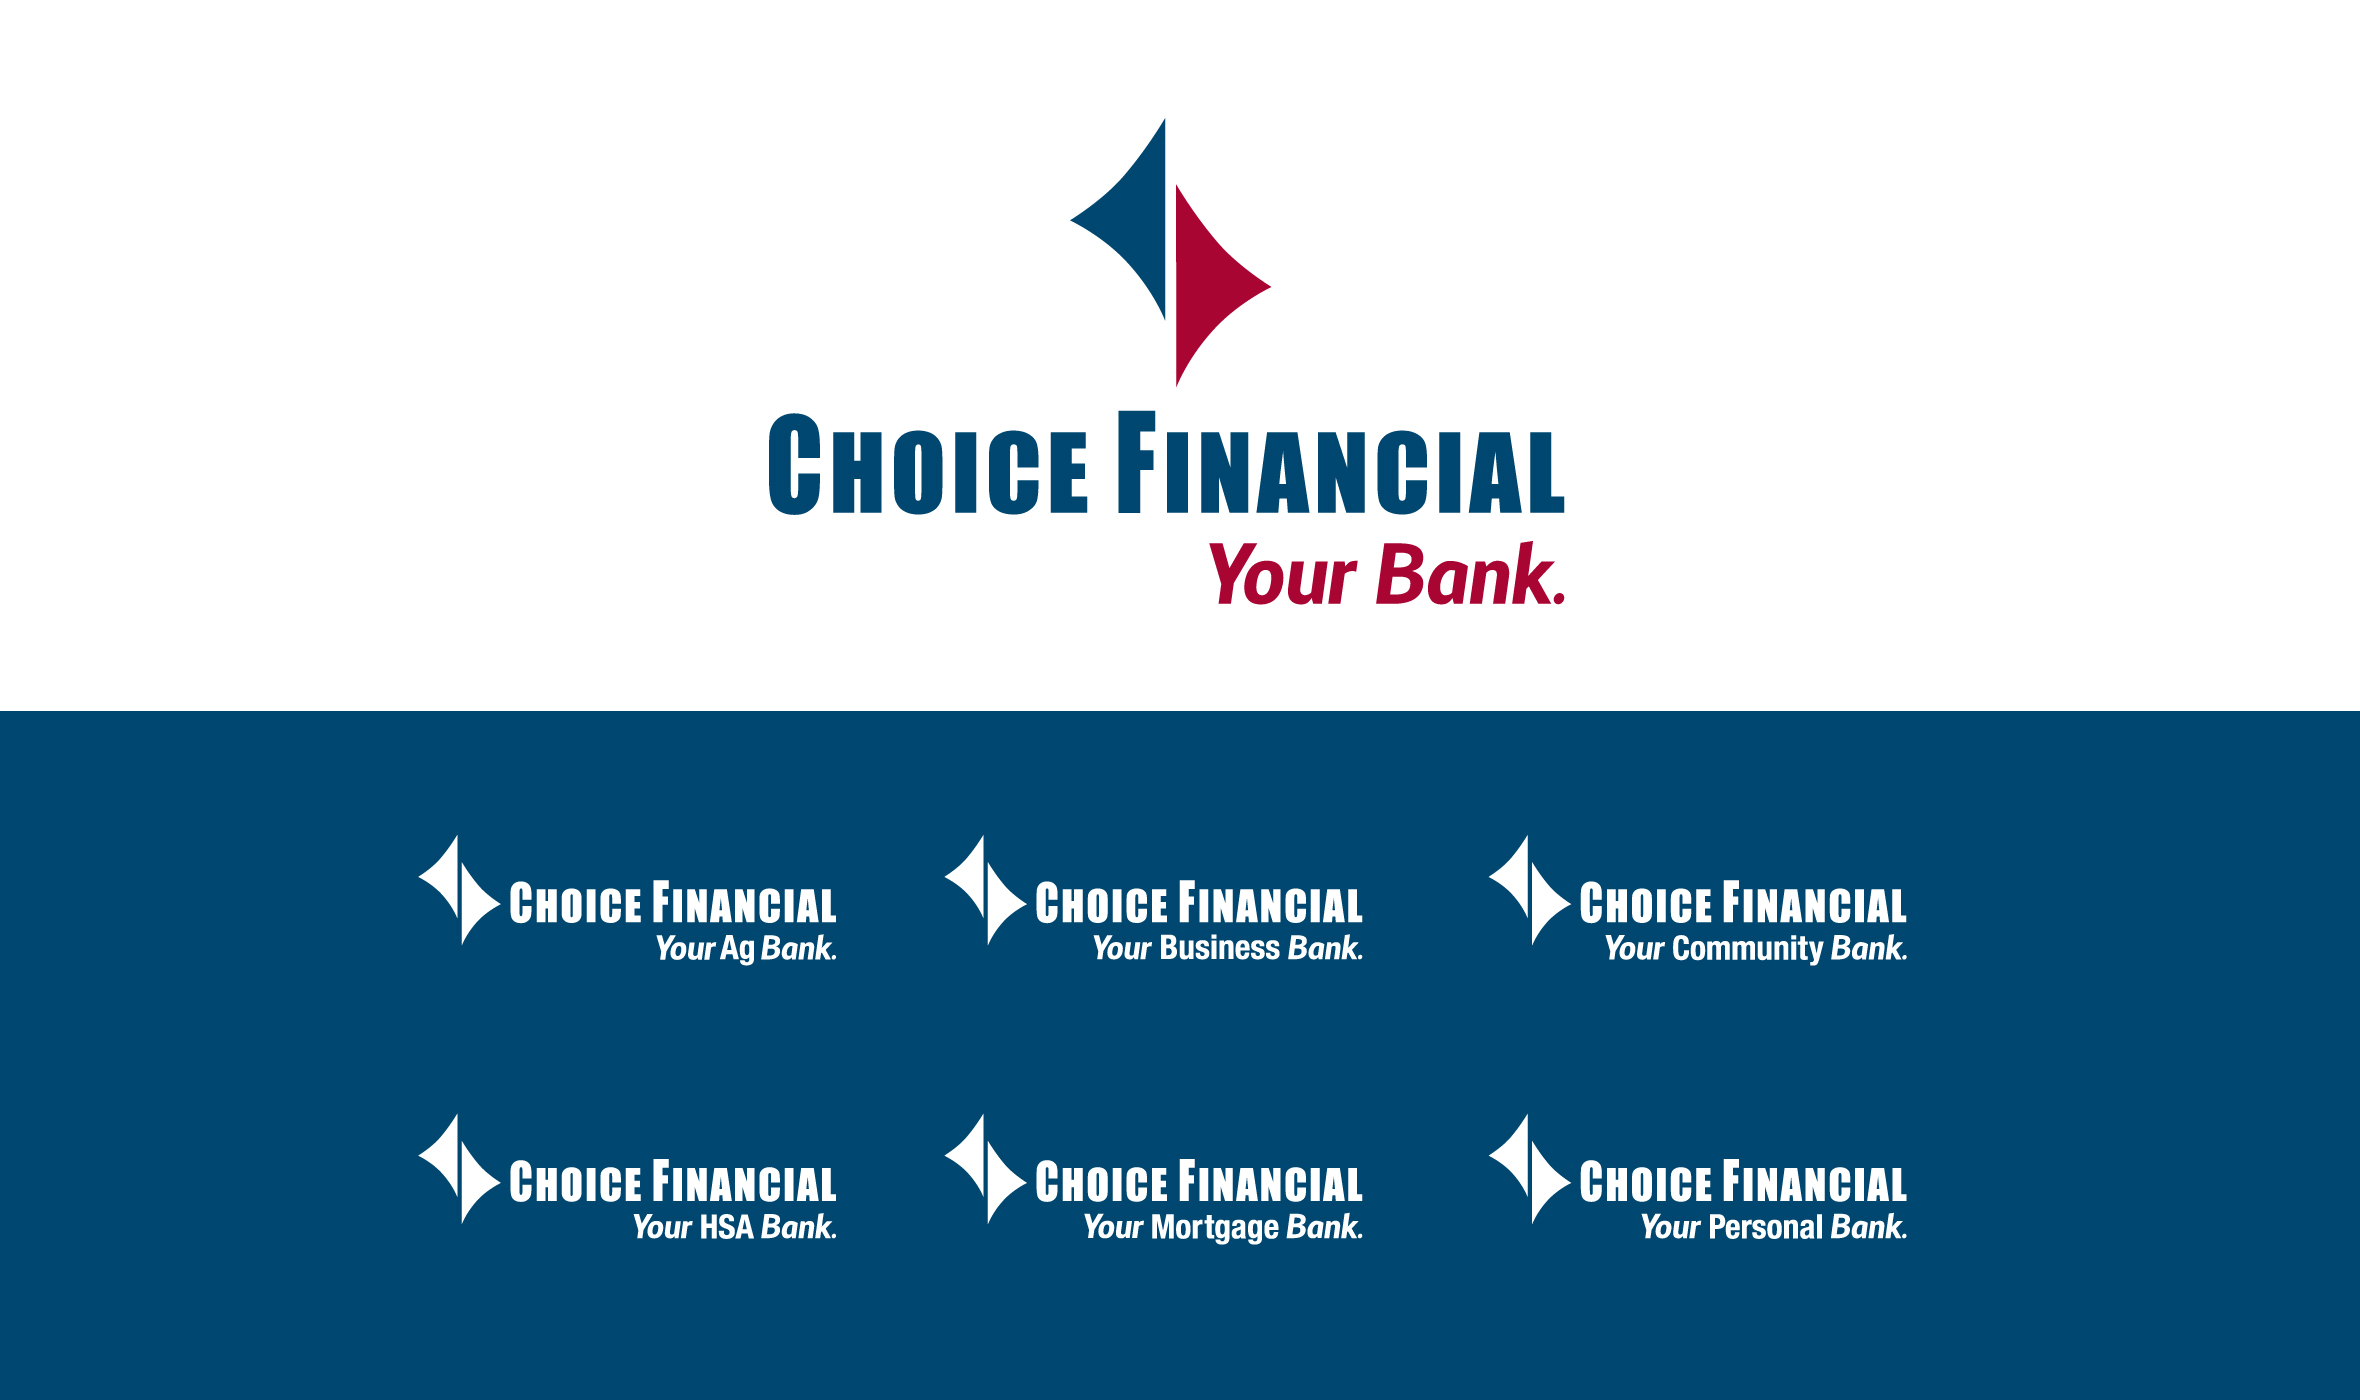 01Choice_YourBank